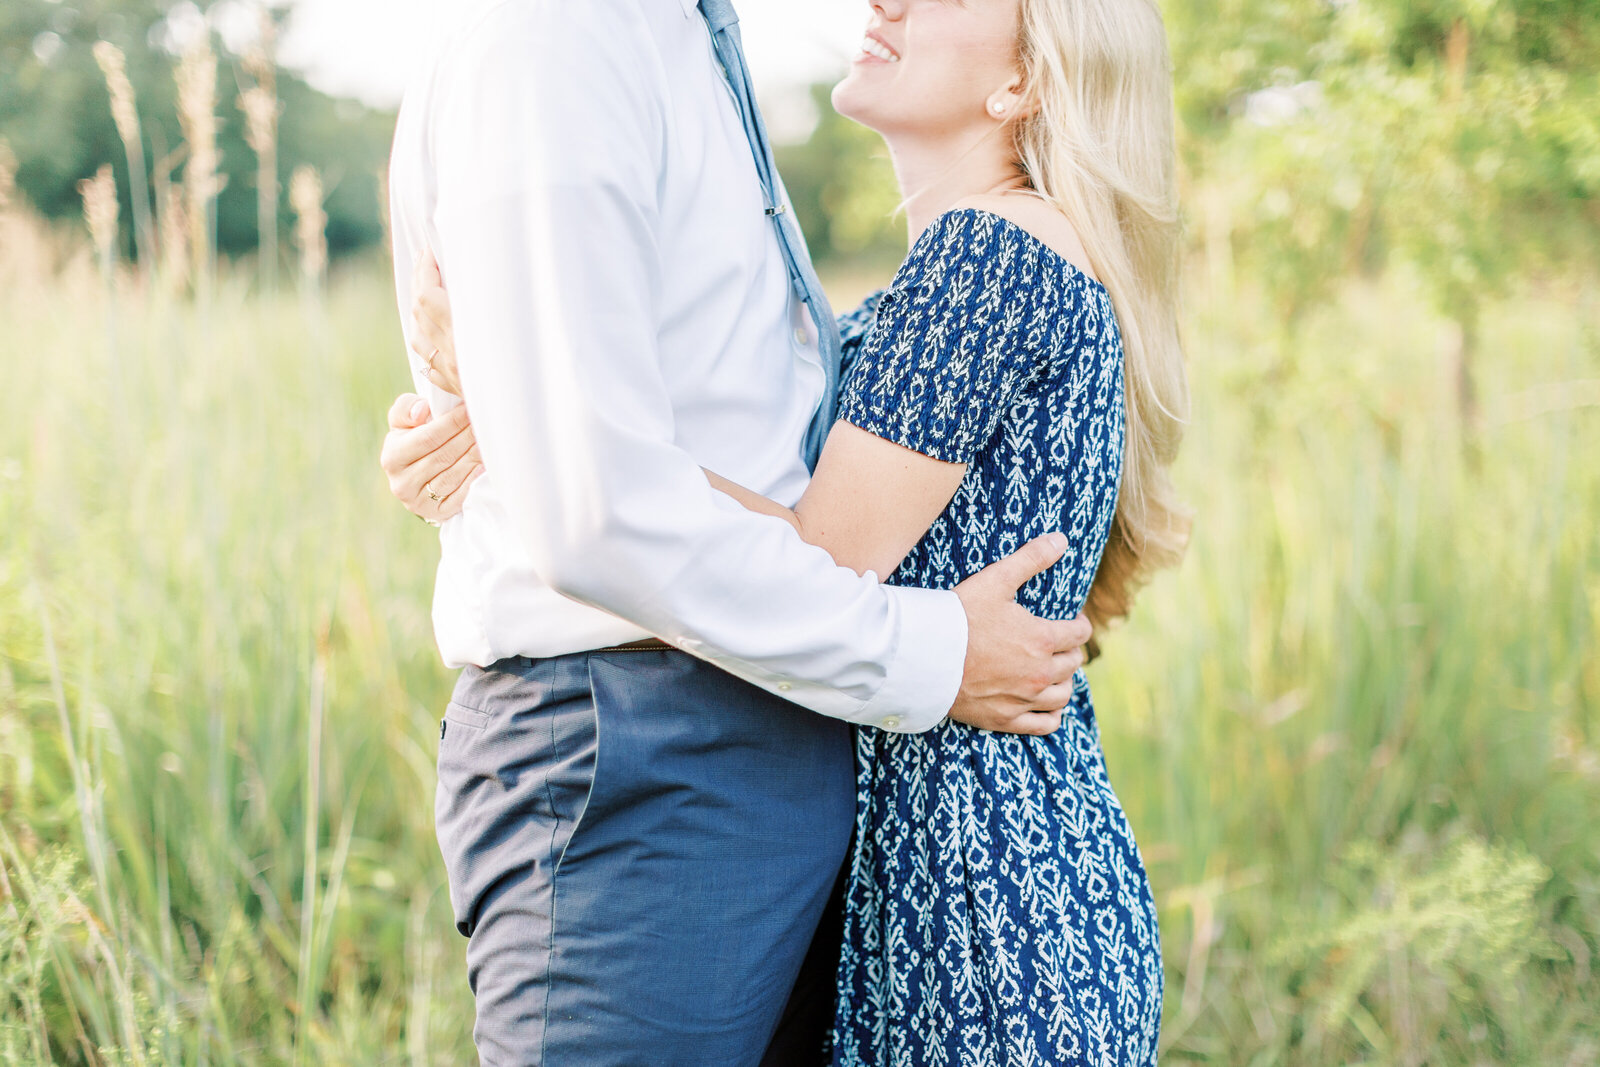 Lydia-Peter-Hanley-Engagement-Peoria-Illinois-Erika-Taphorn-Photography-23